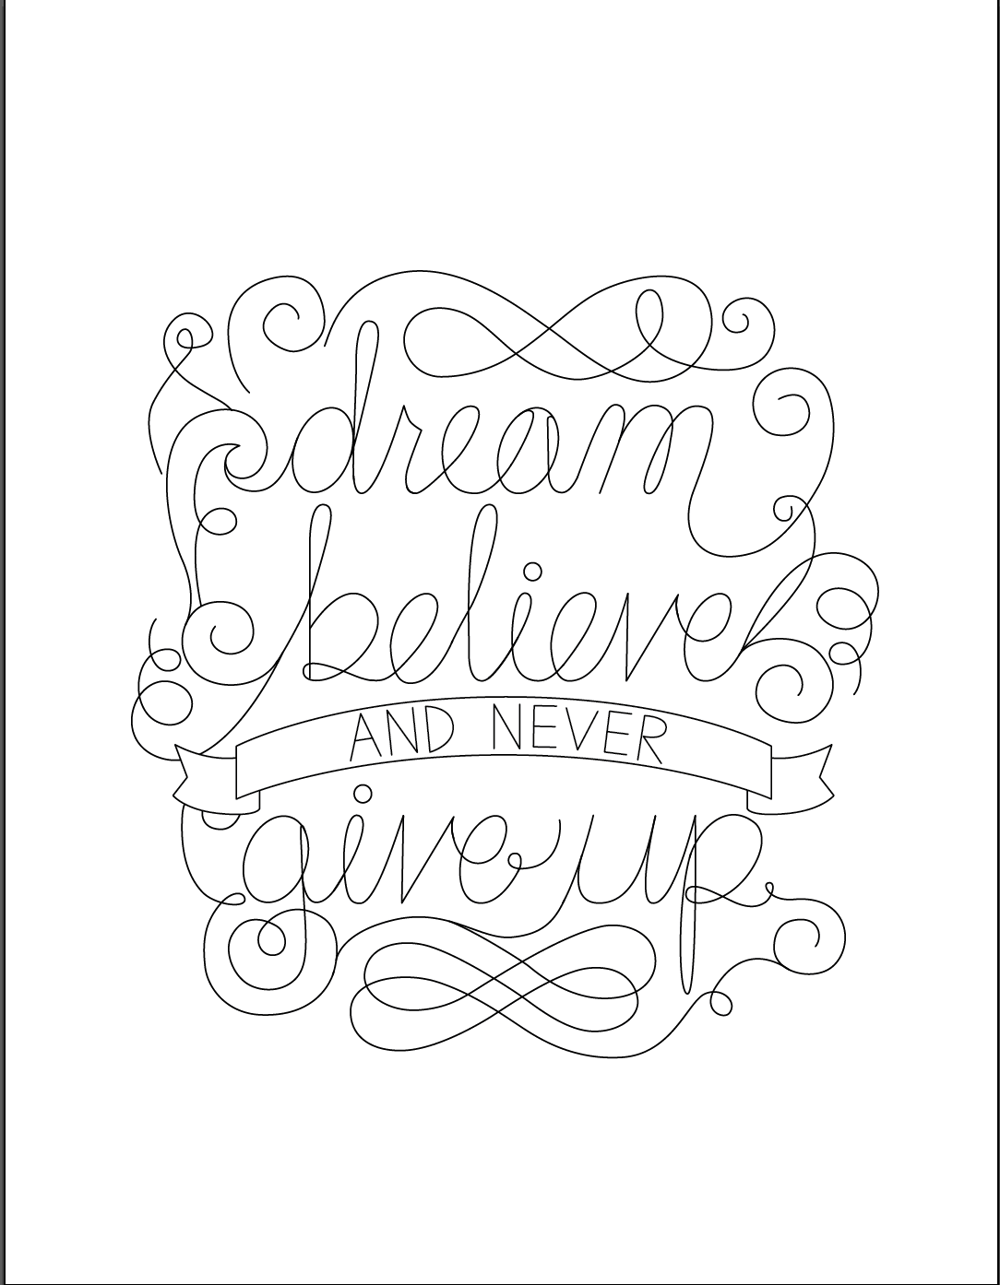 Dream, believe, and never give up - image 7 - student project